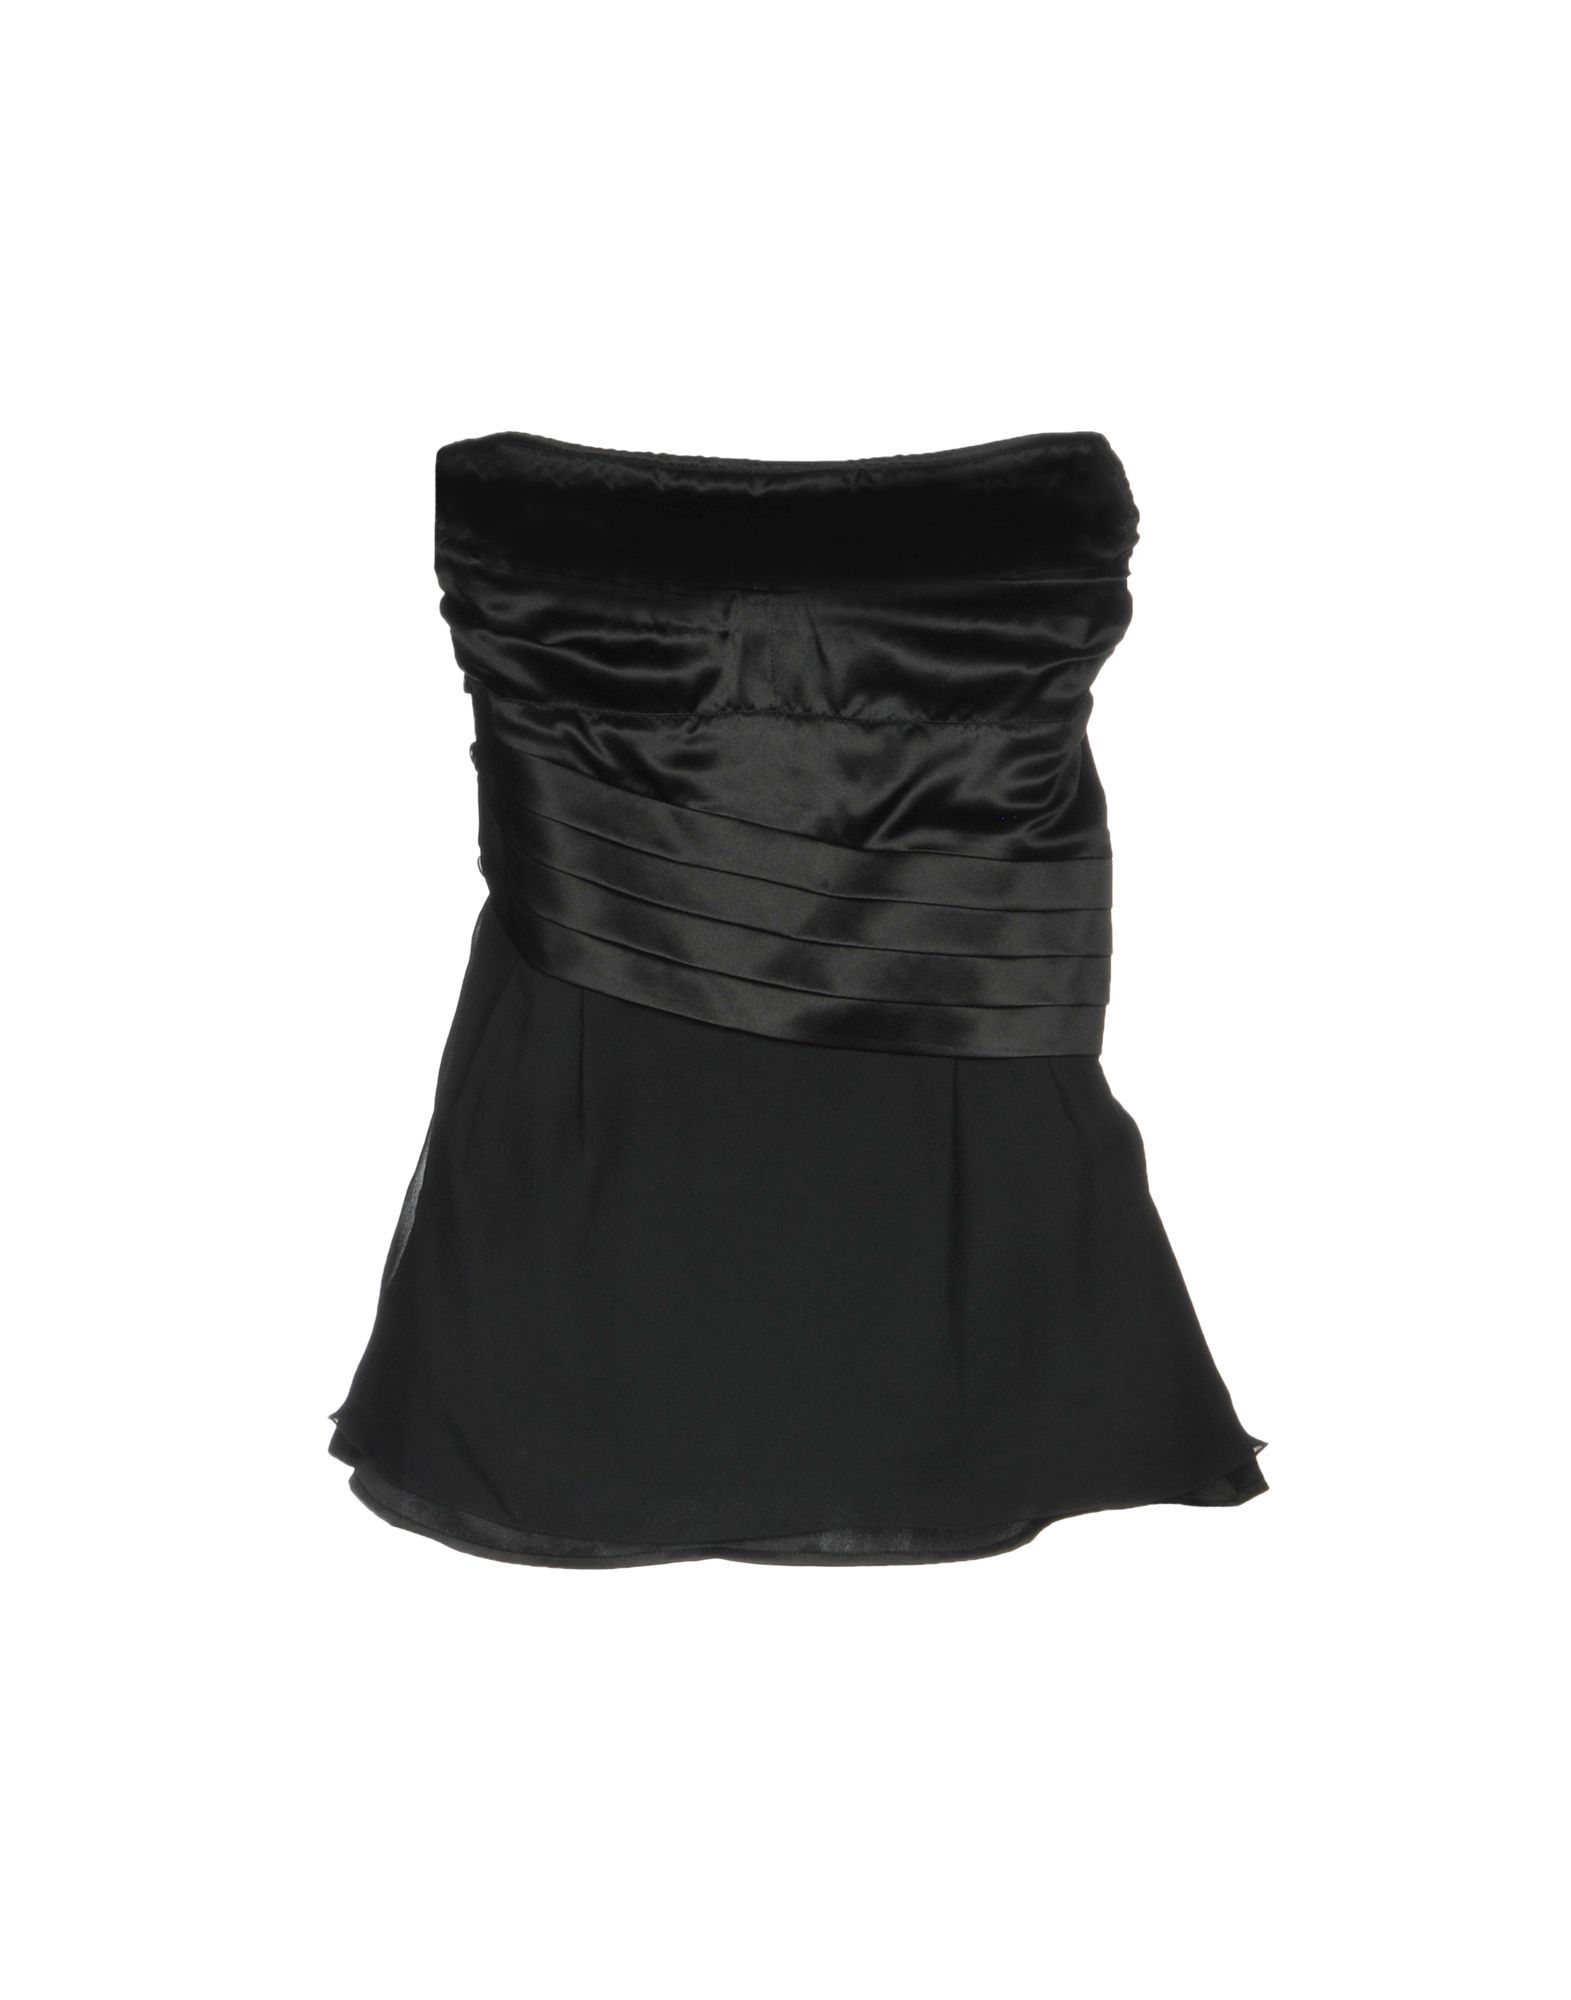 Patrizia Pepe Black Silk Strapless Top